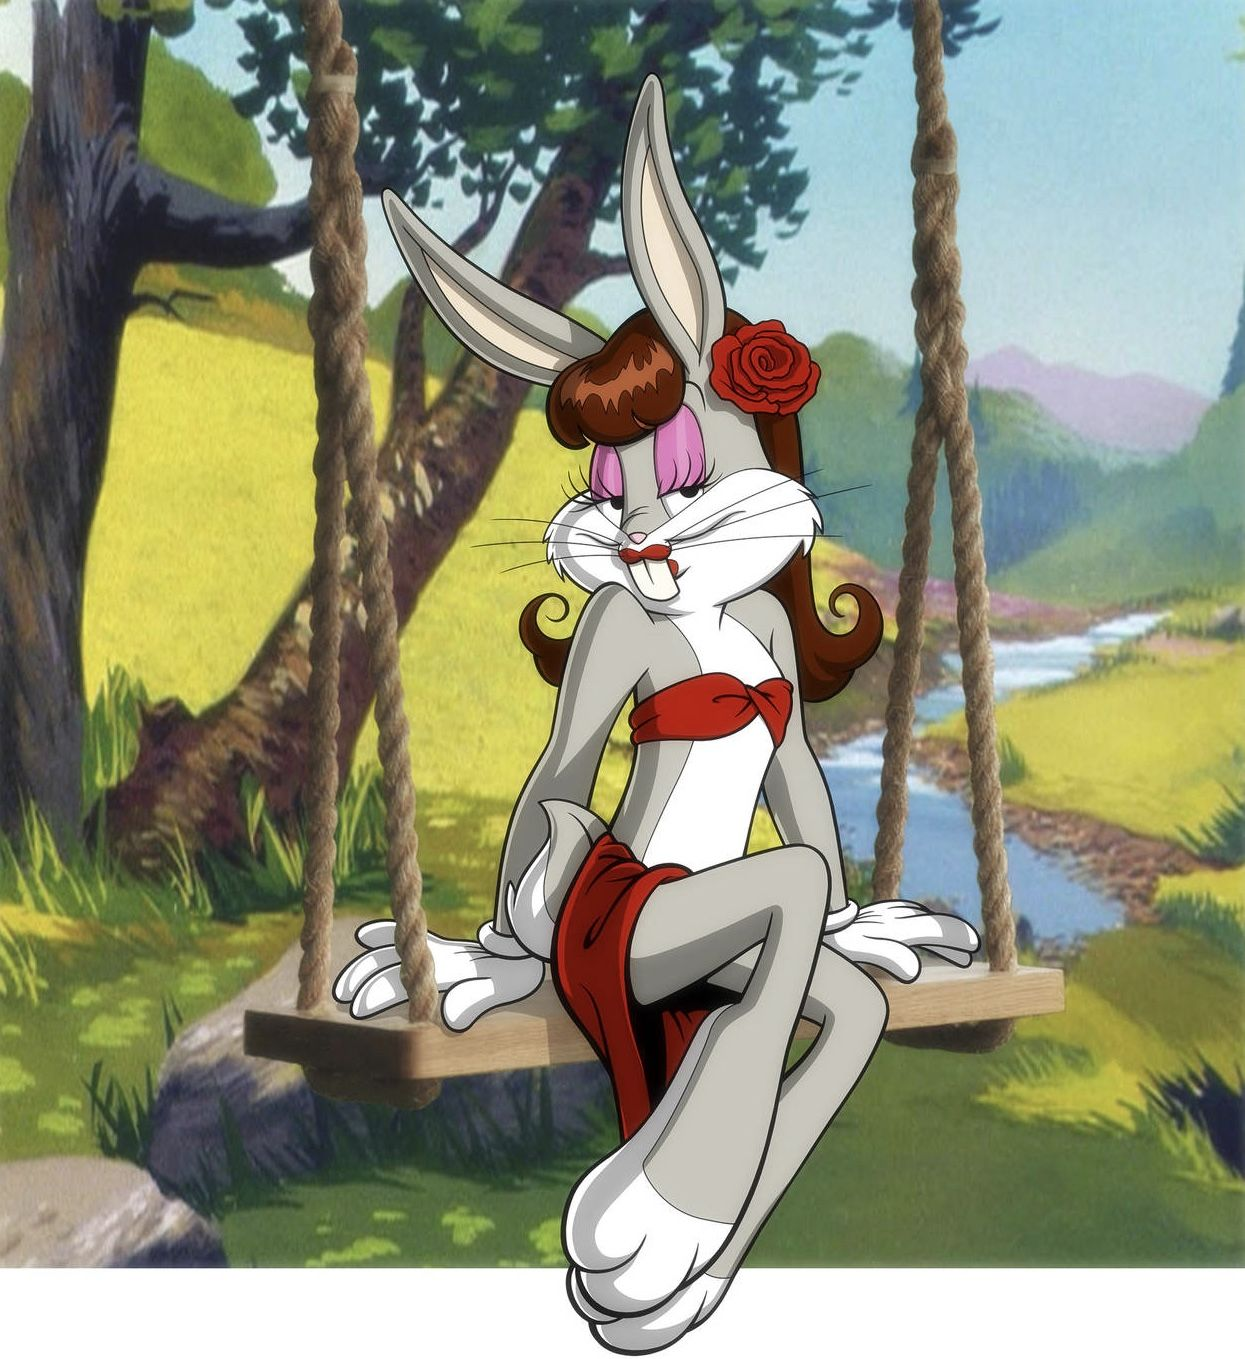 Bugs Bunny In Drag For A Change Looney Tunes Cartoons Bugs Bunny Disney Princess Cartoons